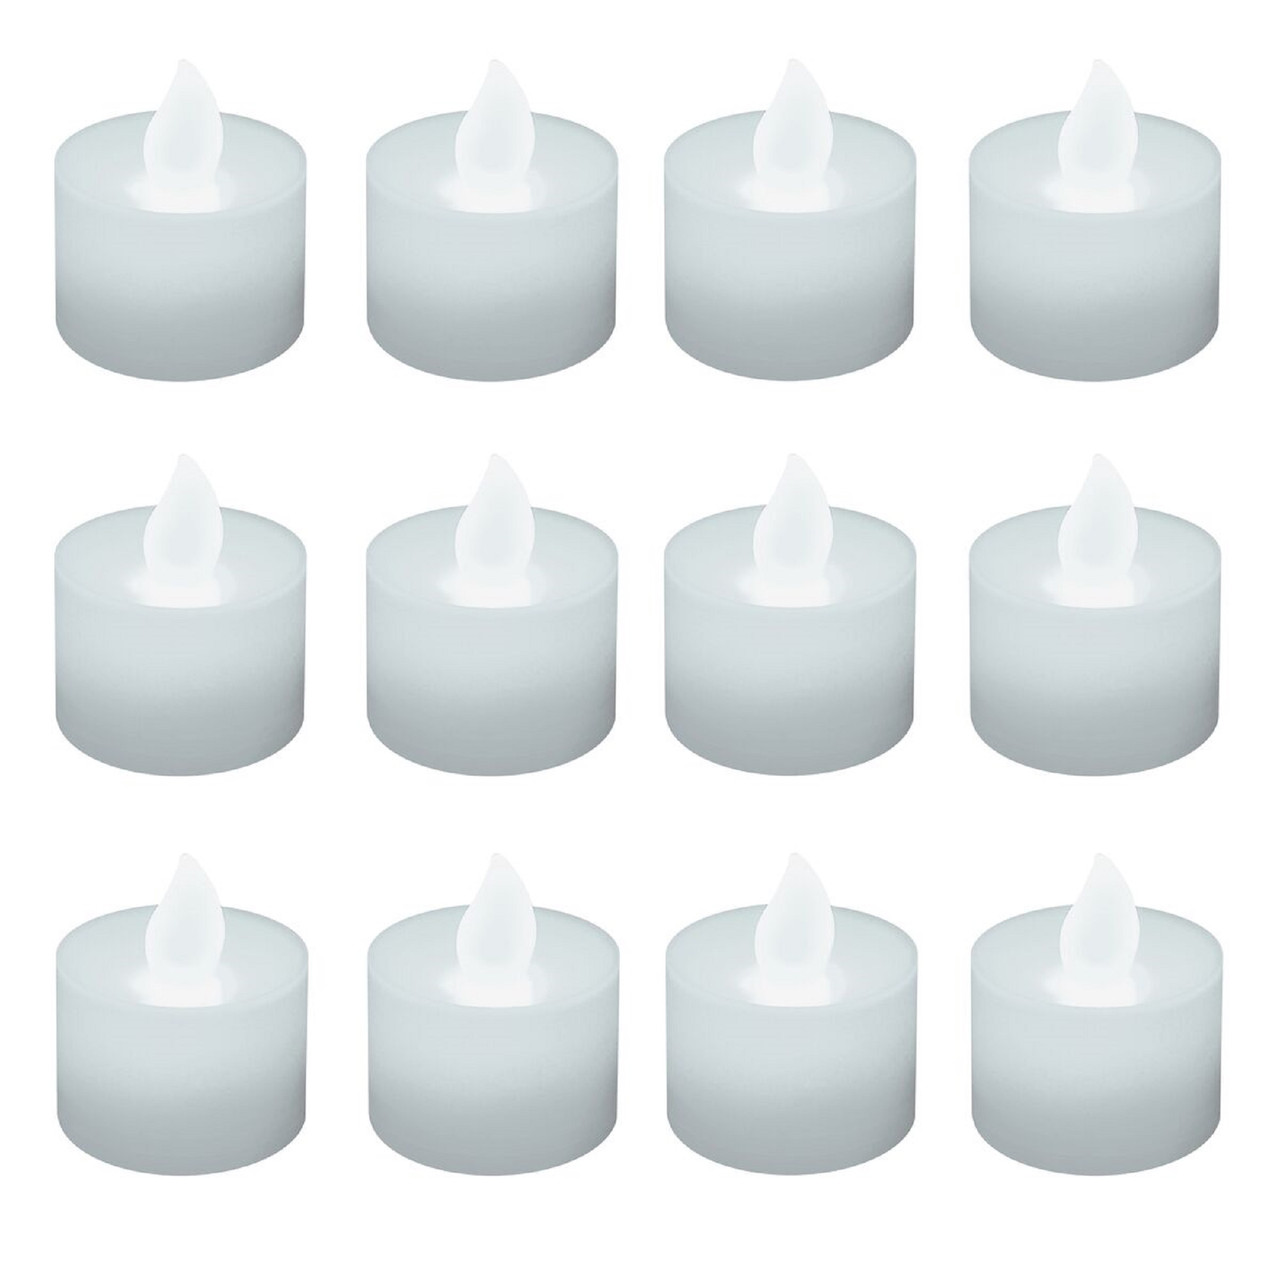 club pack of 12 battery operated led ultra bright white tea light candles 30851533 - Christmas Decorations Battery Operated Candles